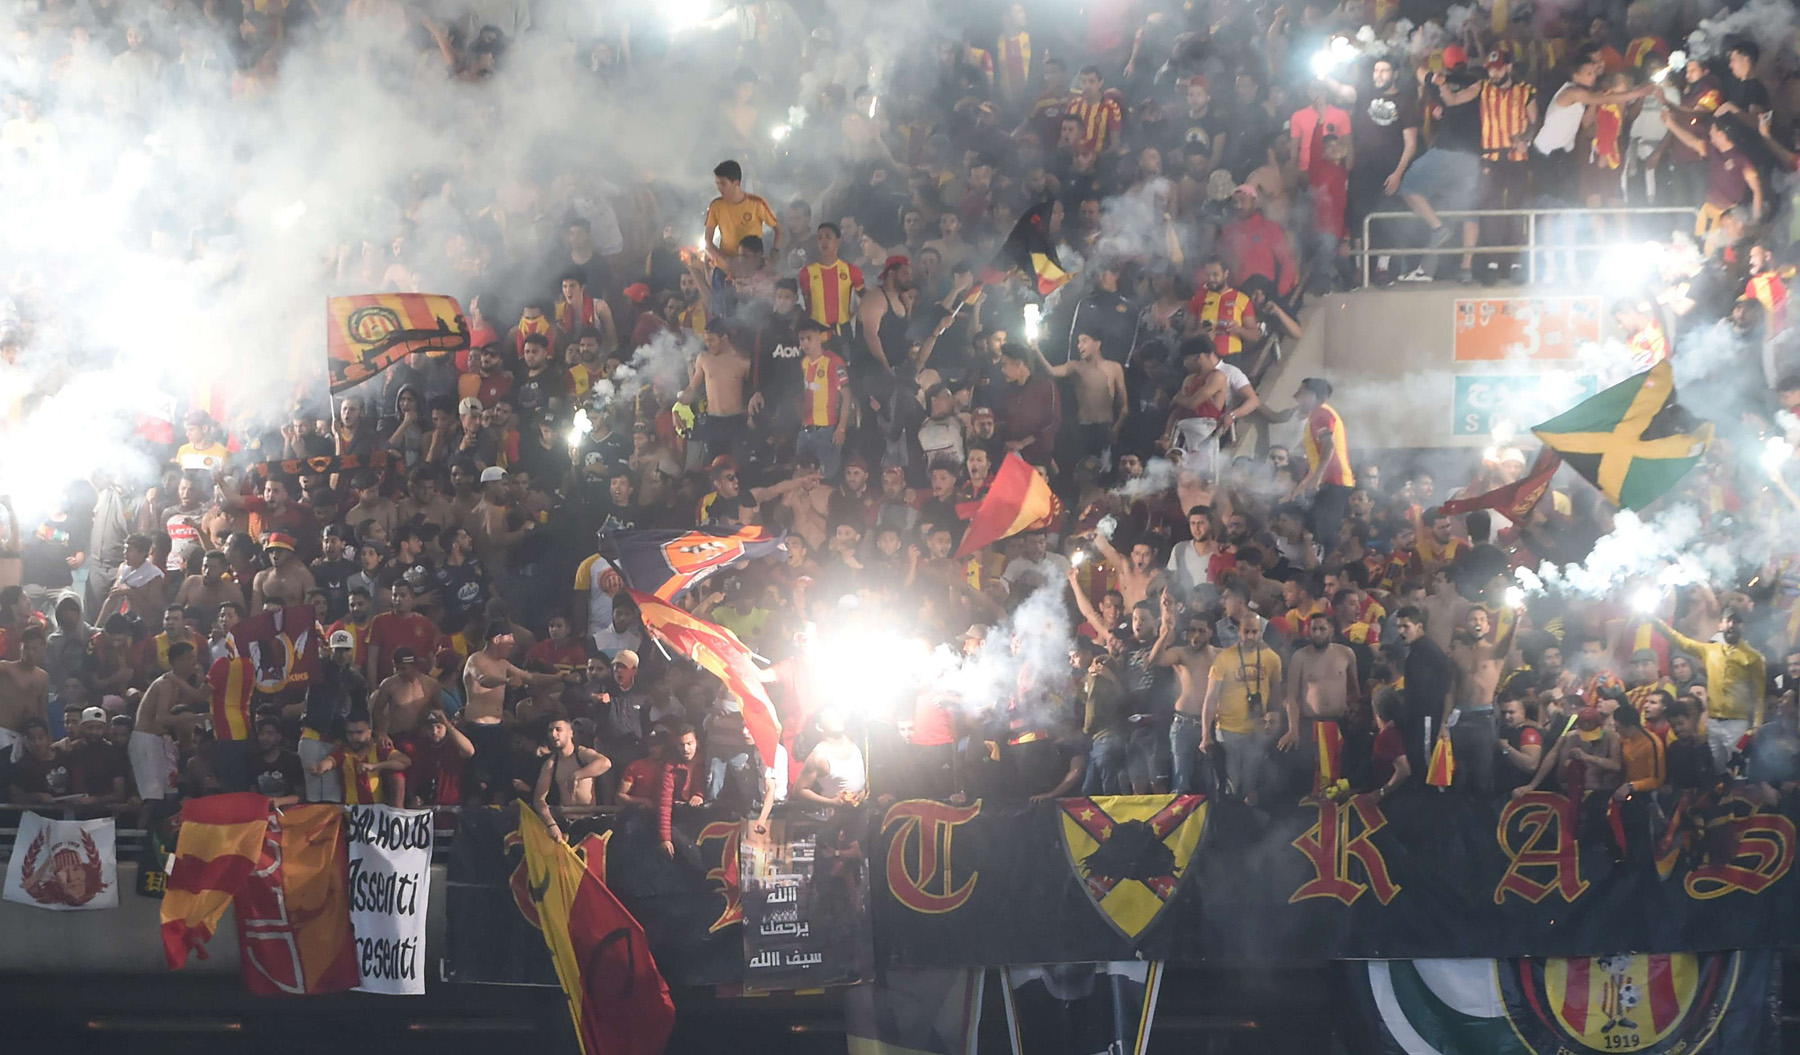 Esperance supporters react during the second leg of the 2019 CAF Champion League finals between Tunisia's Esperance and Morocco's Wydad Casablanca. (AFP)